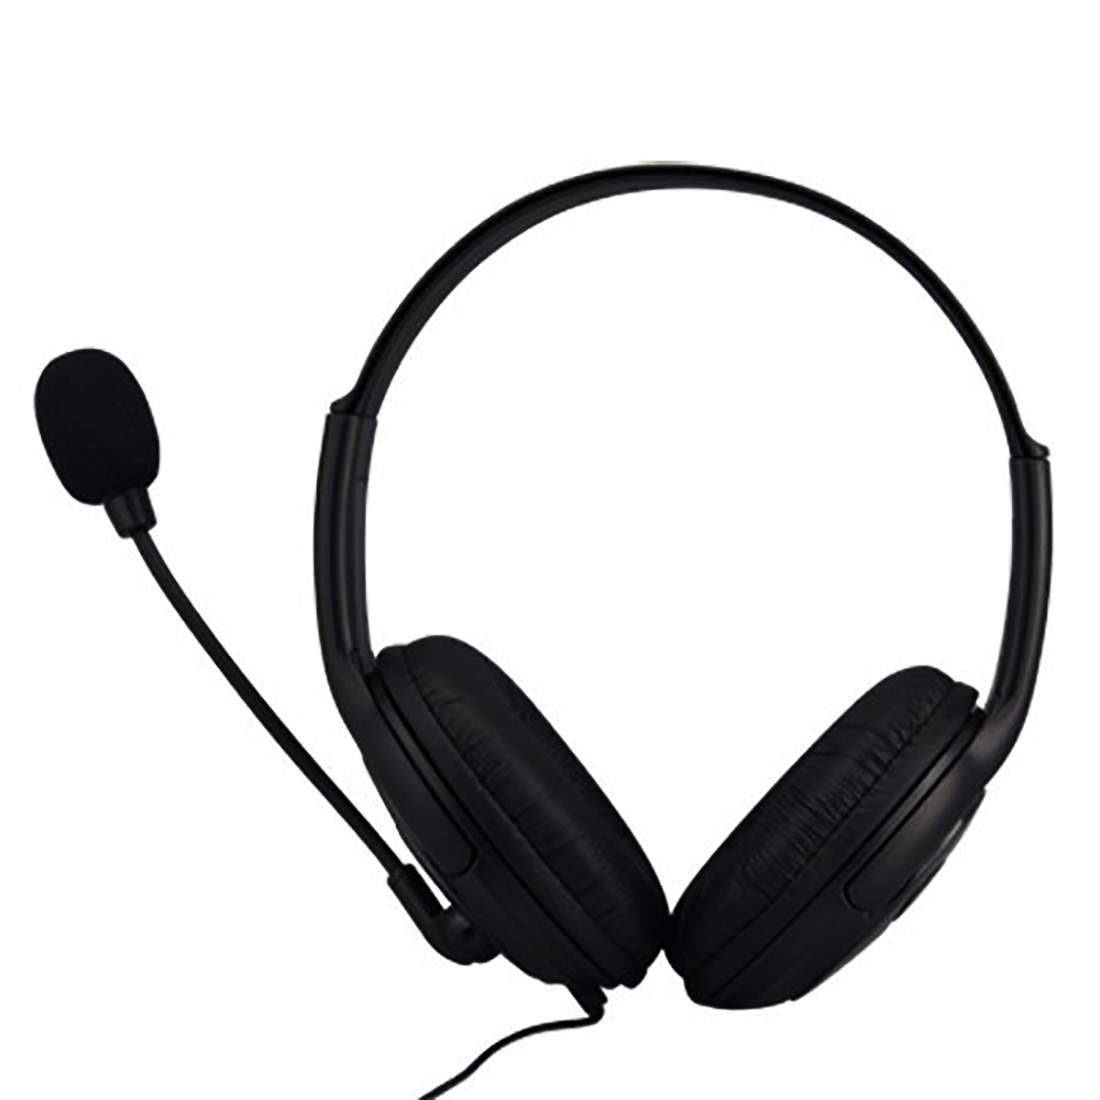 Marsnaska  New Fashion  Selling protable xbox360 Wired Gaming Chat dual Headset Headphone Microphone for xbox 360 computer Black